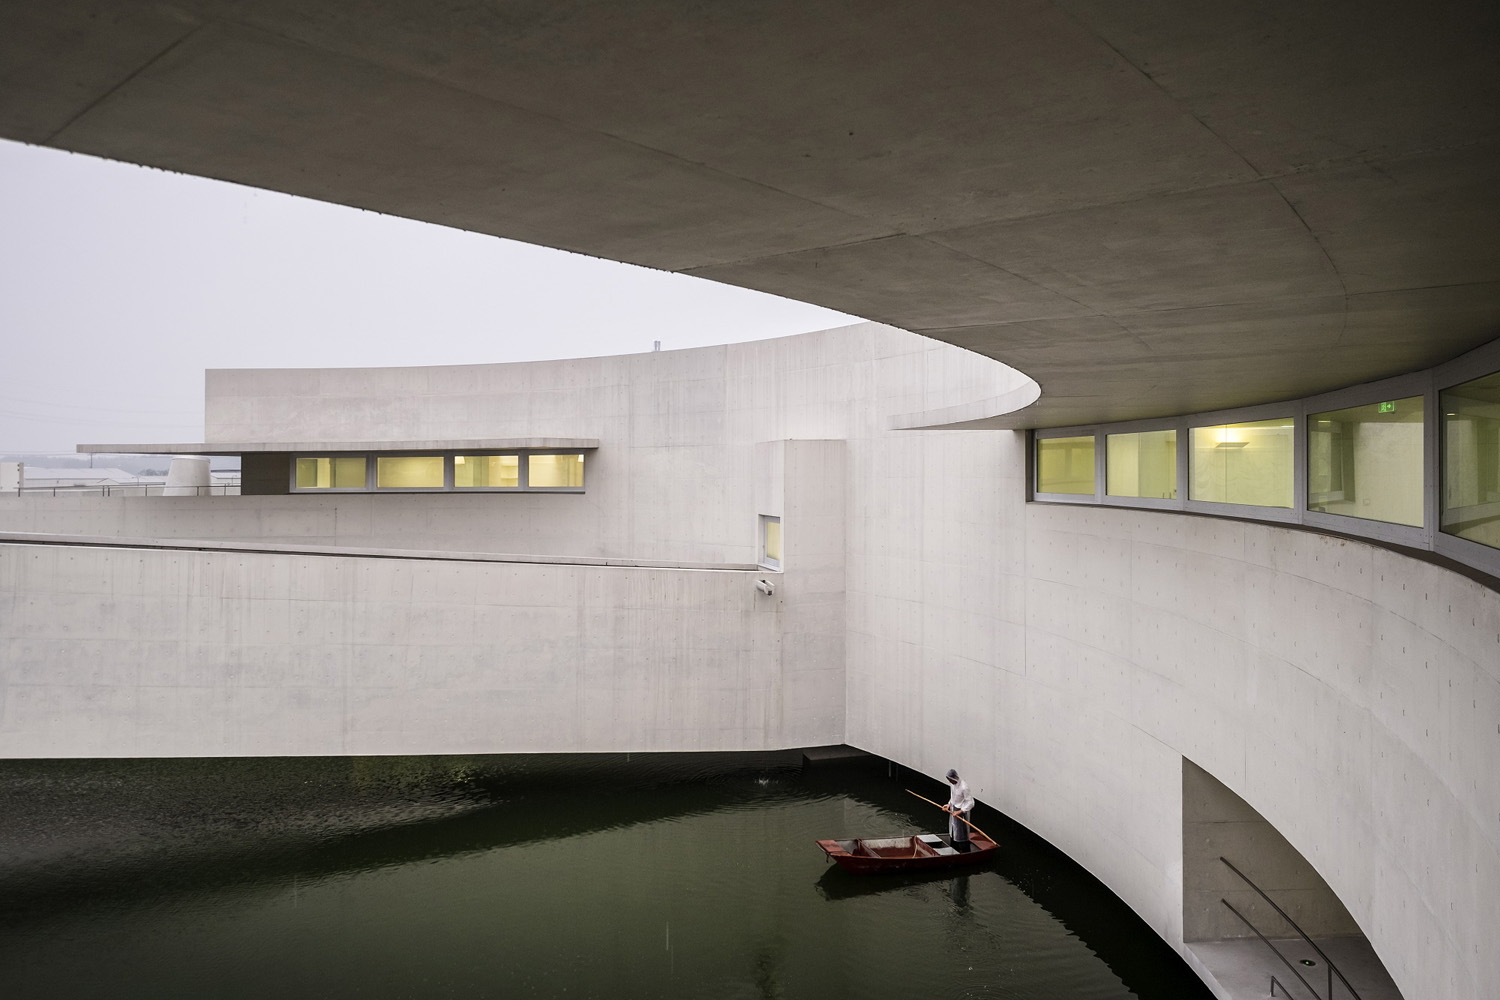 mm_The Building on the Water design by Álvaro Siza + Carlos Castanheira_24